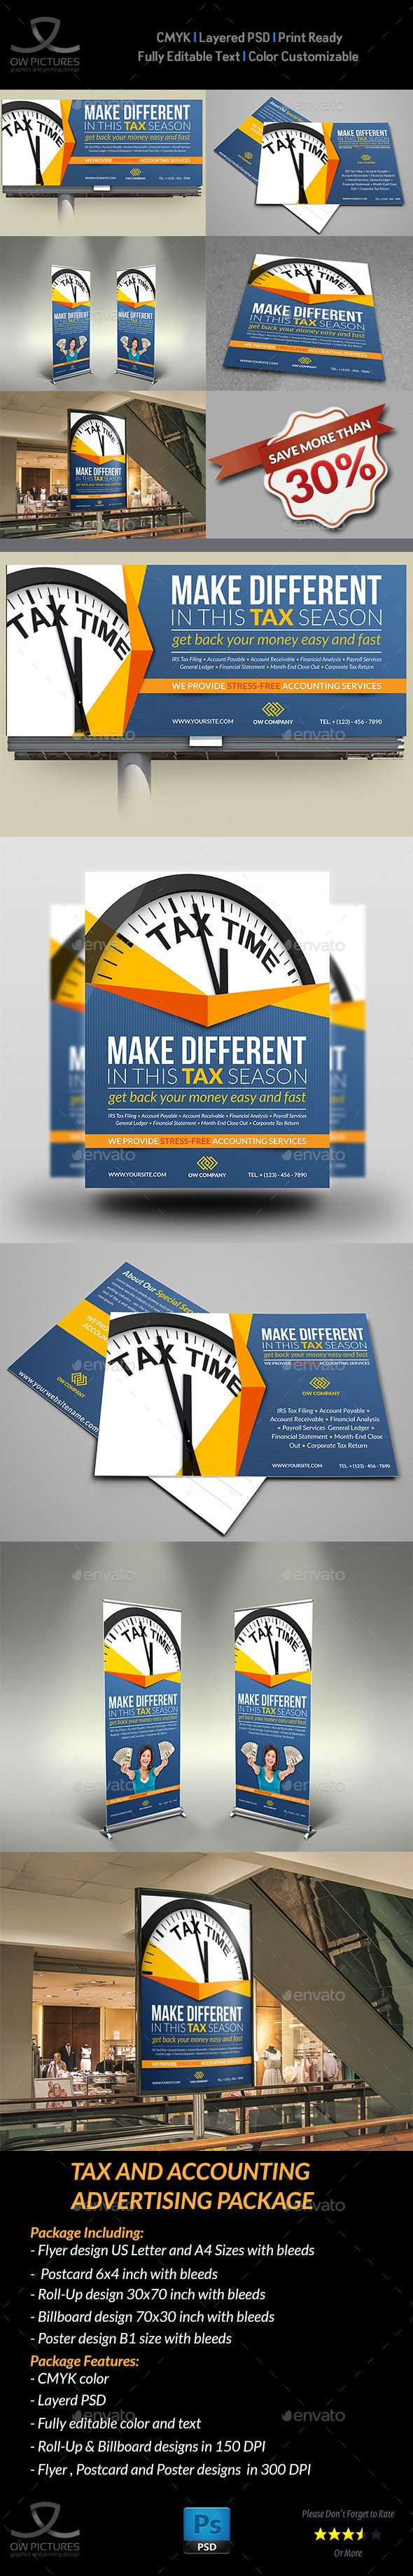 Advertising Bundle Description : Tax and Accounting Advertising Bundle including Flyer design, Billboard design, Roll-Up Signa